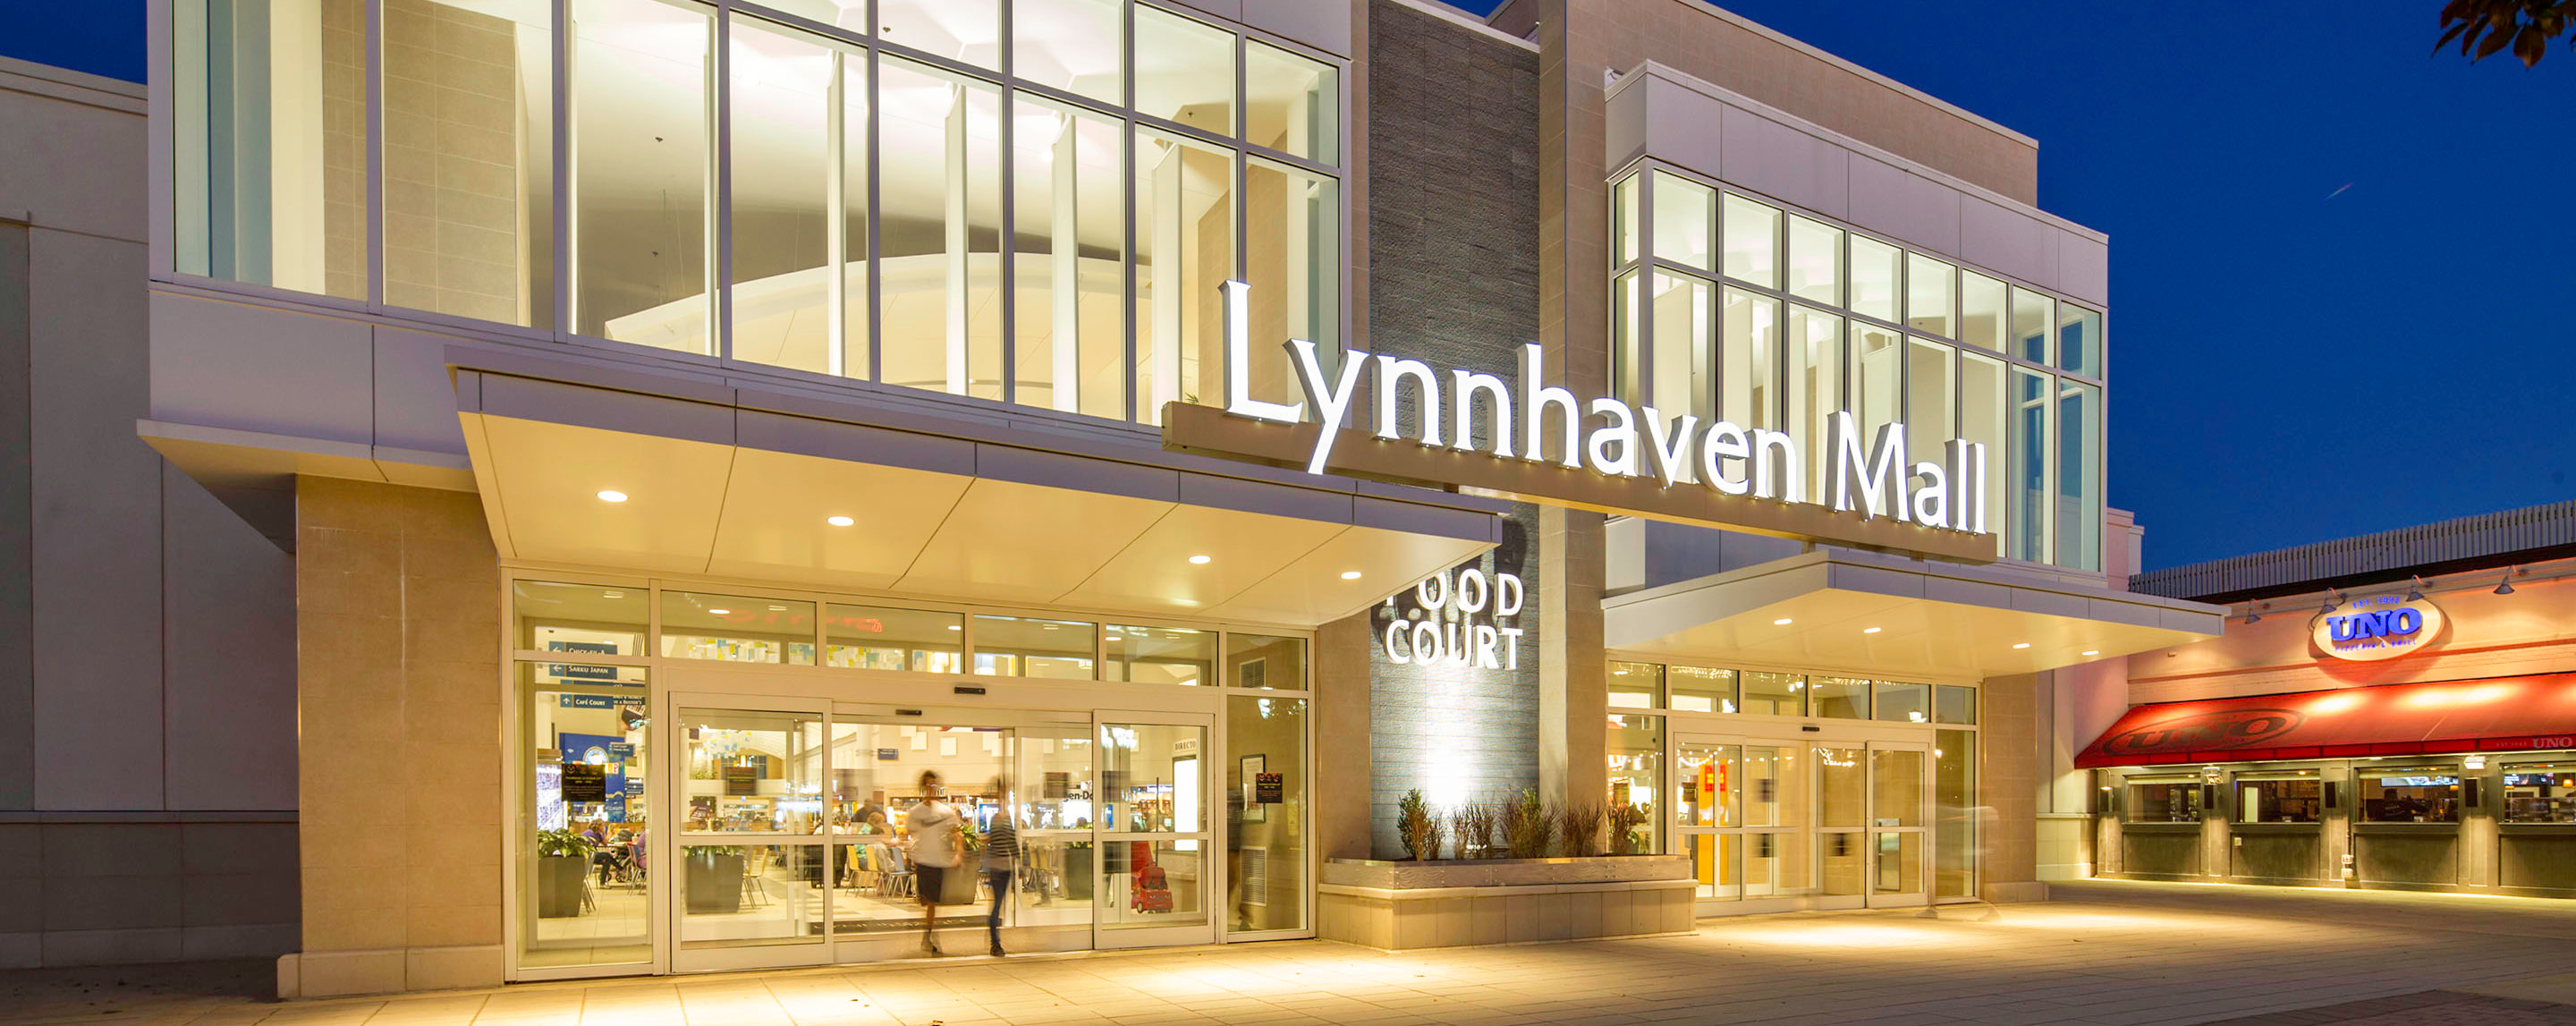 Movie times, buy movie tickets online, watch trailers and get directions to AMC Lynnhaven 18 in Virginia Beach, VA. Find everything you need for your local movie theater near you. Lynnhaven Mall Loop, Virginia Beach, Virginia Get Tickets Add Favorite Nearby Theatres.